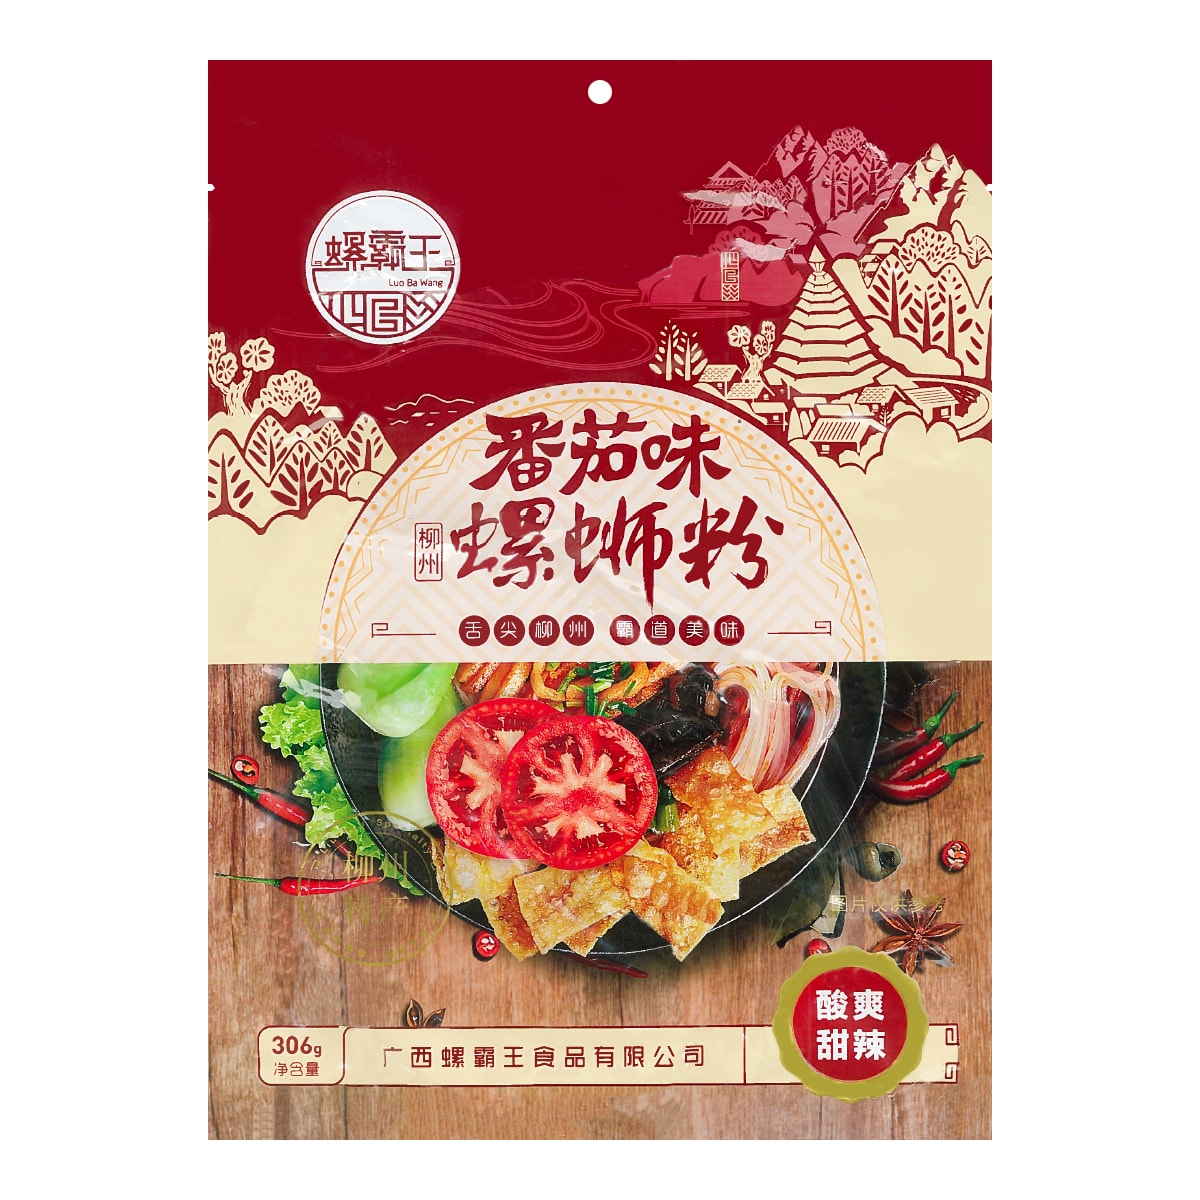 Yamibuy.com:Customer reviews:LUOBAWANG Luo Si Rice Noodles Tomato Flavored